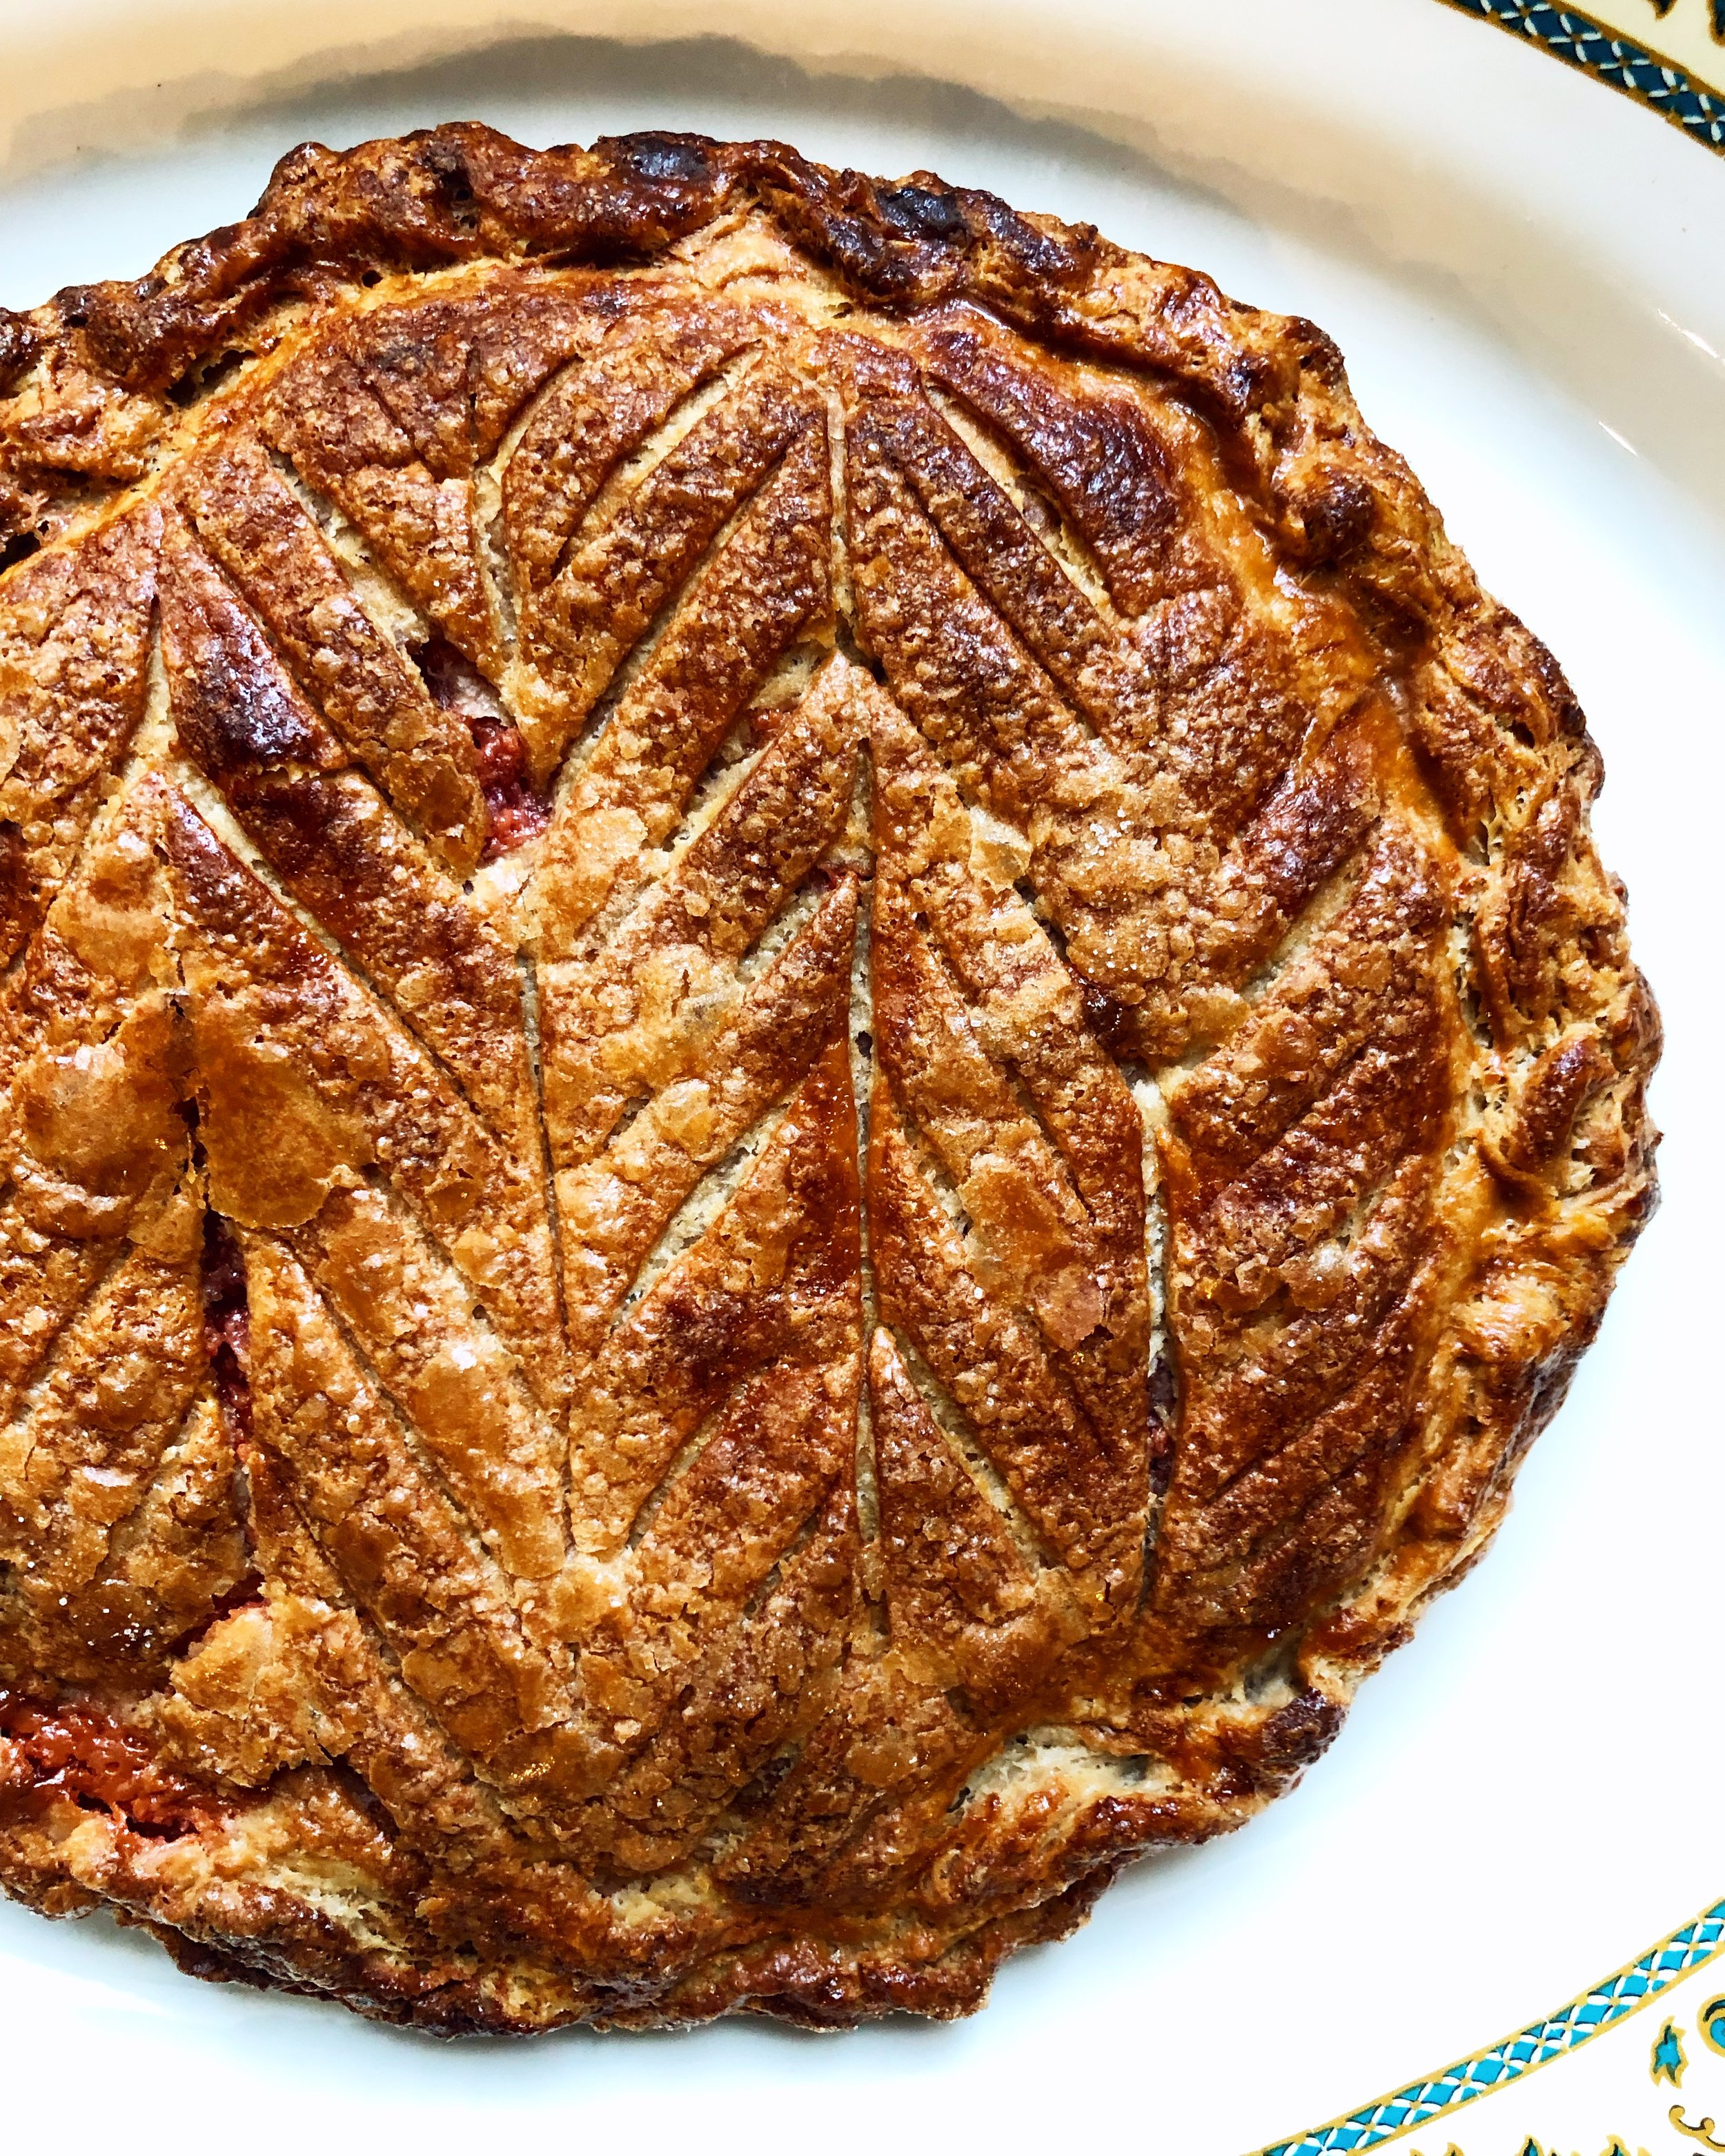 Galette des rois! Put one whole almond in the filling if you want to be really traditional. Whoever finds it in their piece wins a special prize!